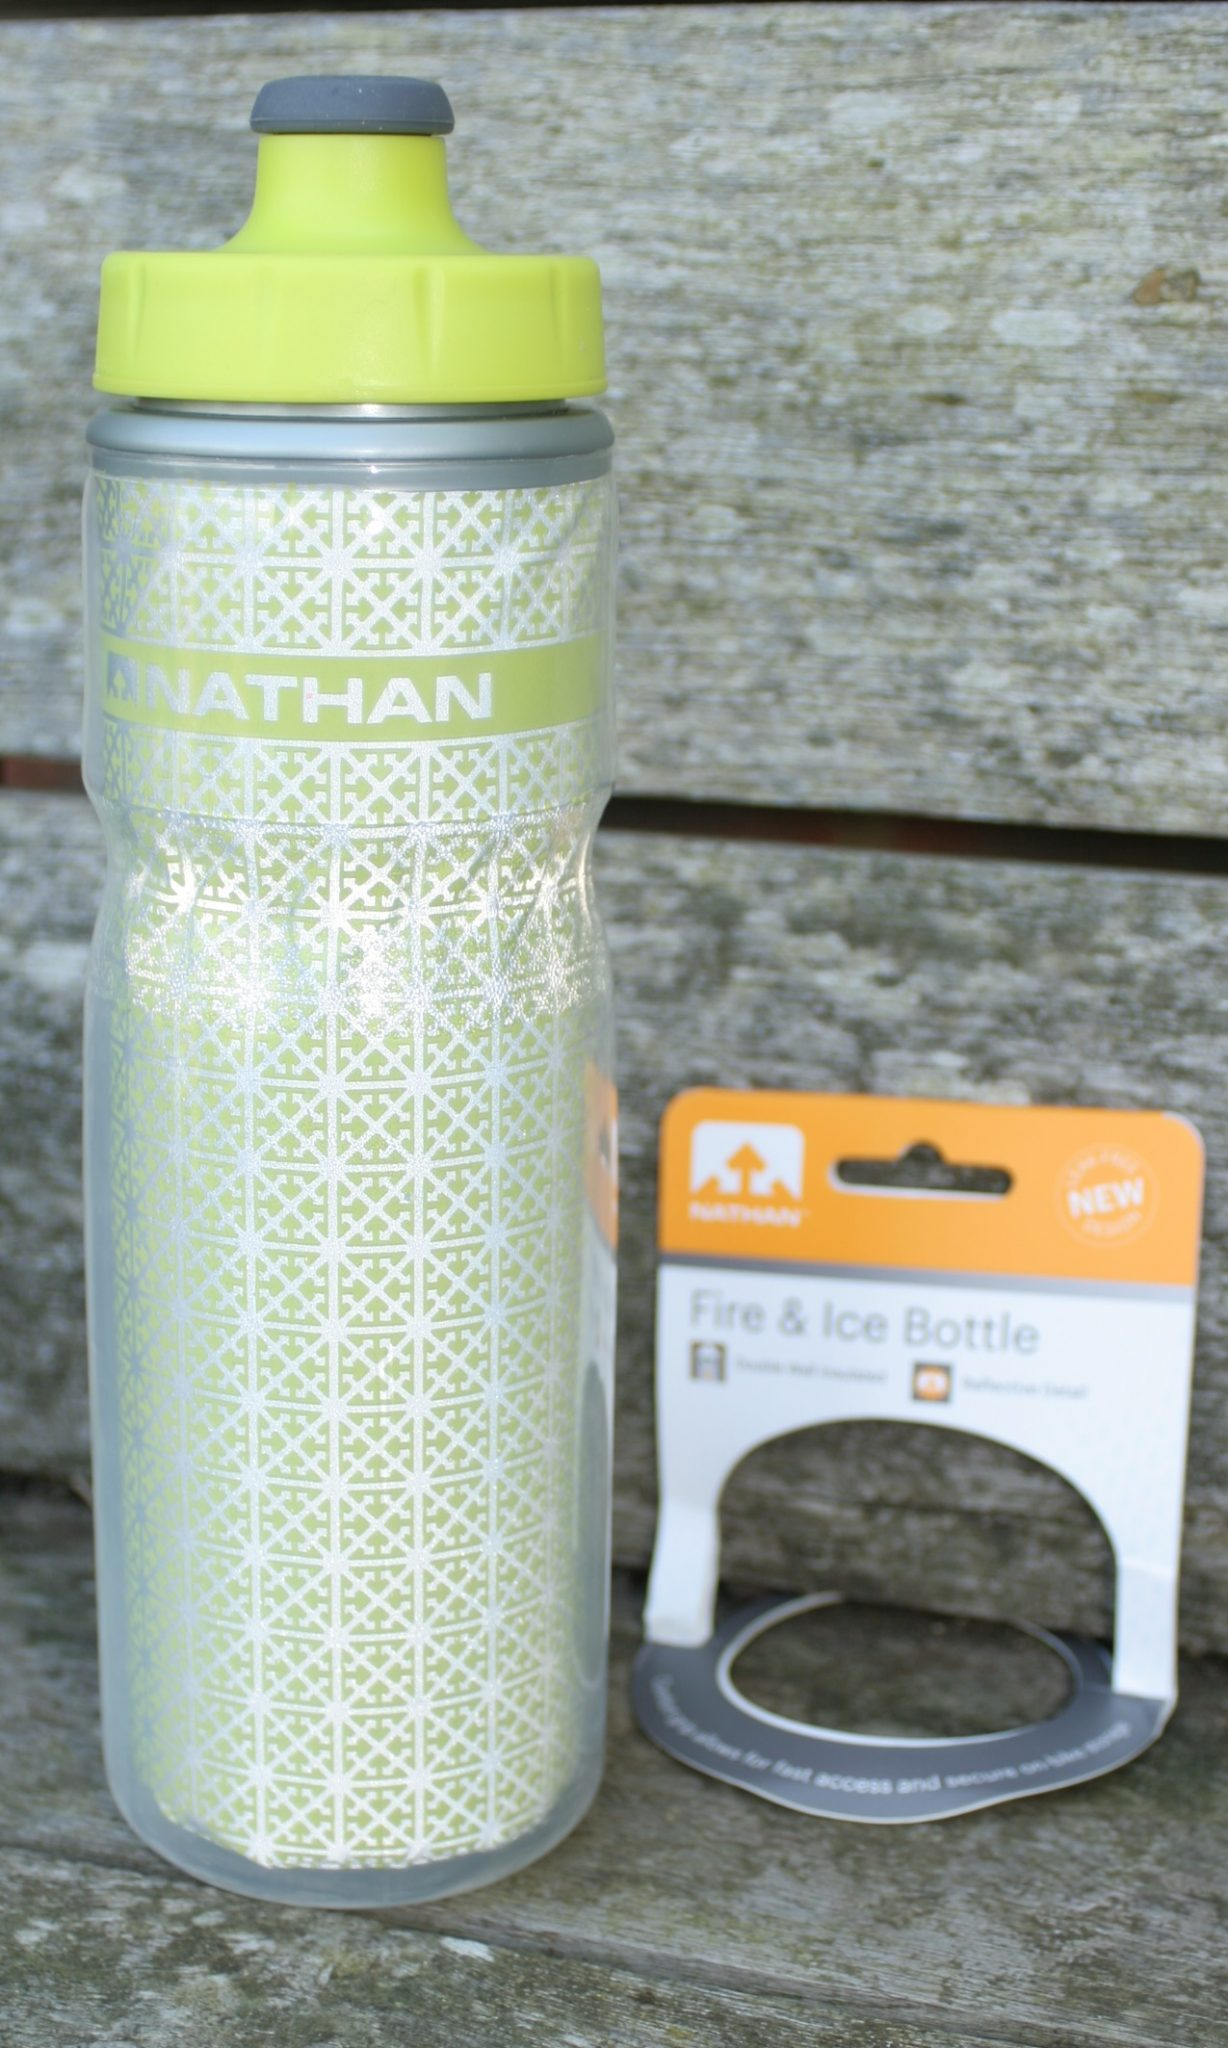 Nathan Fire Ice Bottle Review